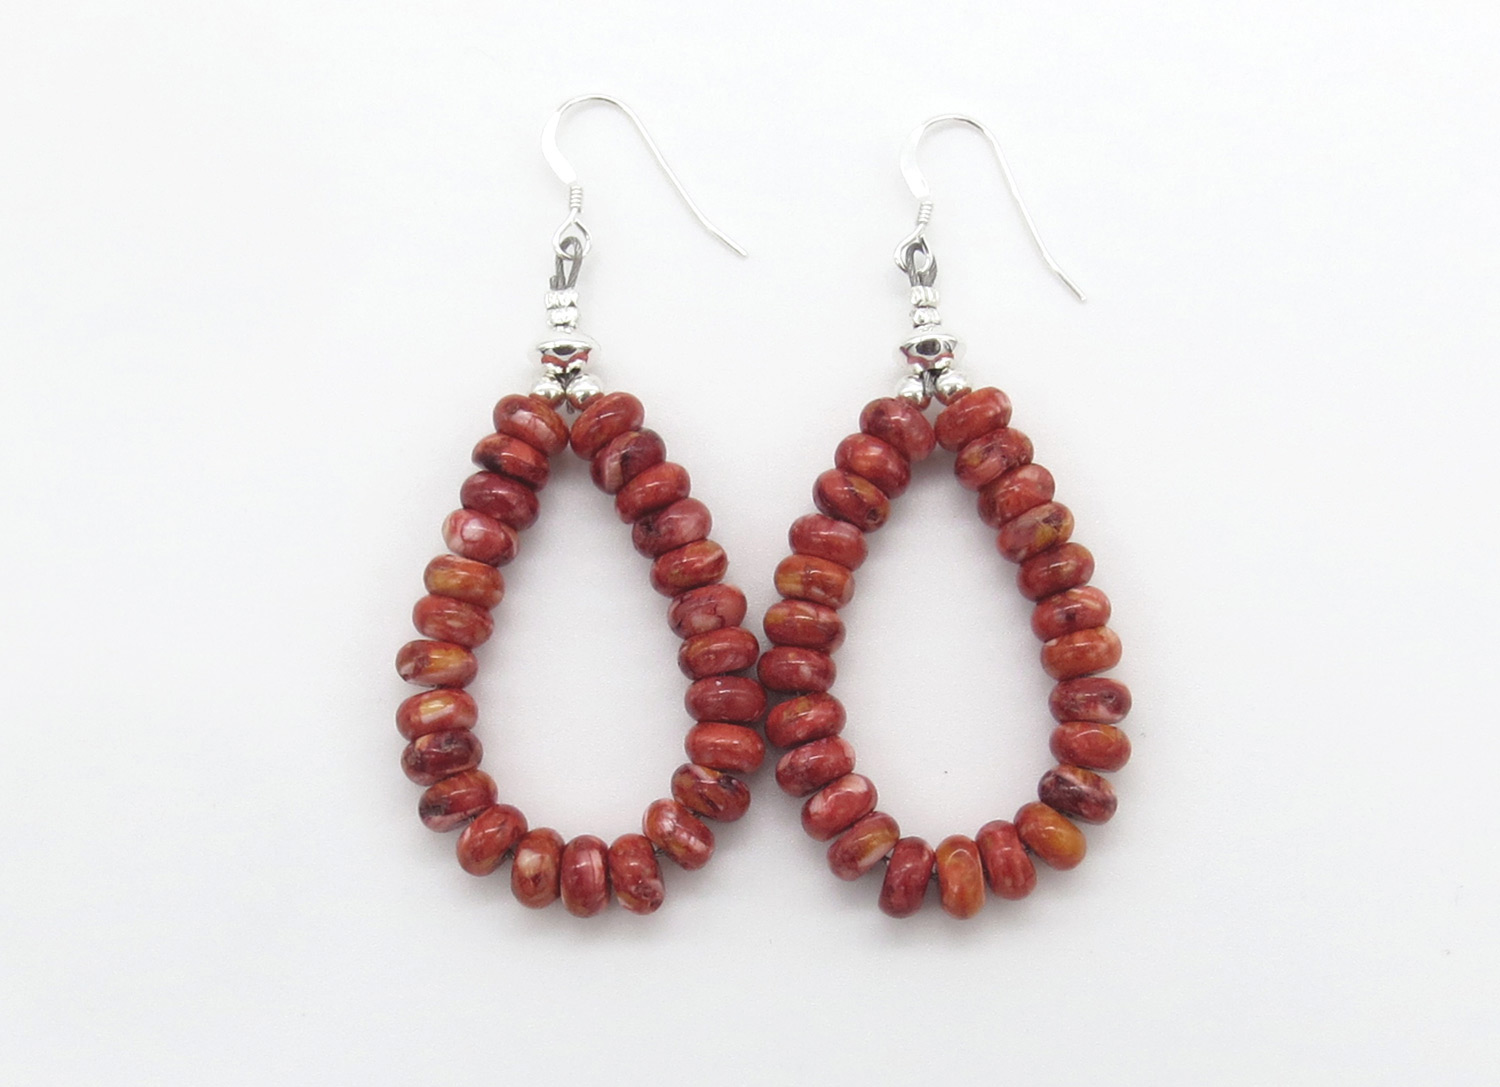 Red Spiny Oyster Bead Earrings Native American Jewelry - 2106rb